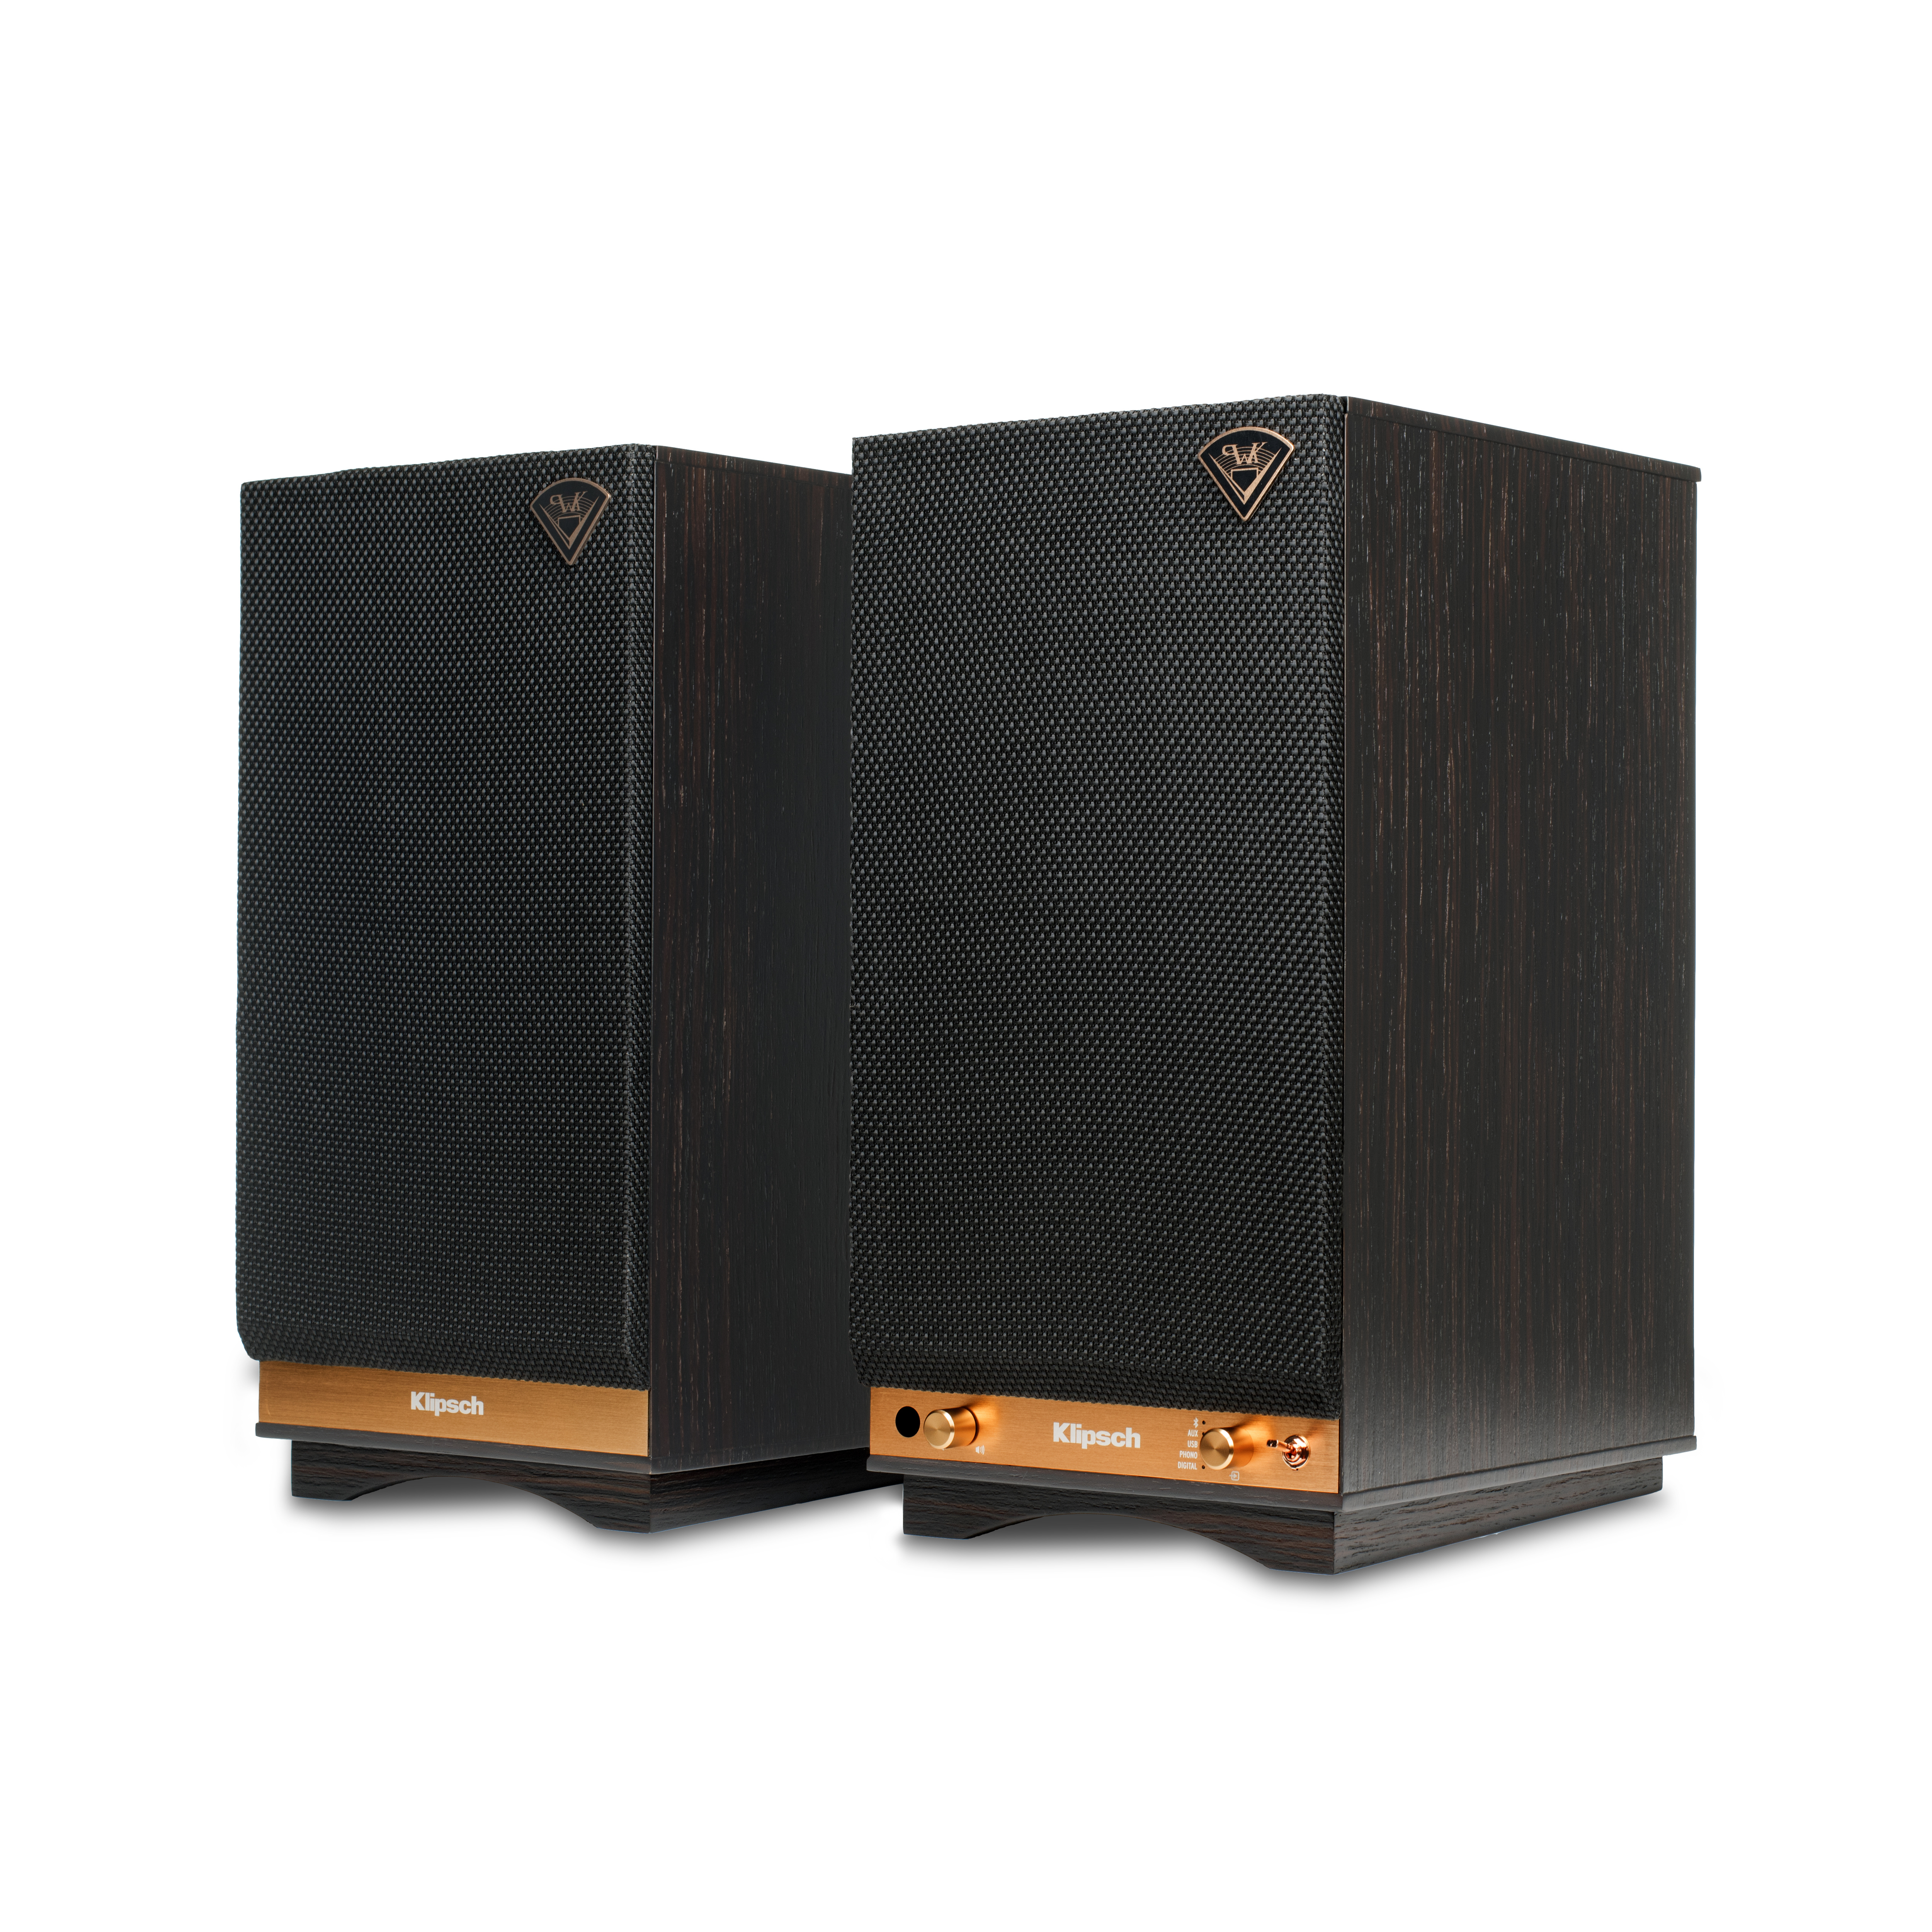 The Sixes Powered Bookshelf Speakers Klipsch Usb Current Booster Power Stereo Computer Speaker